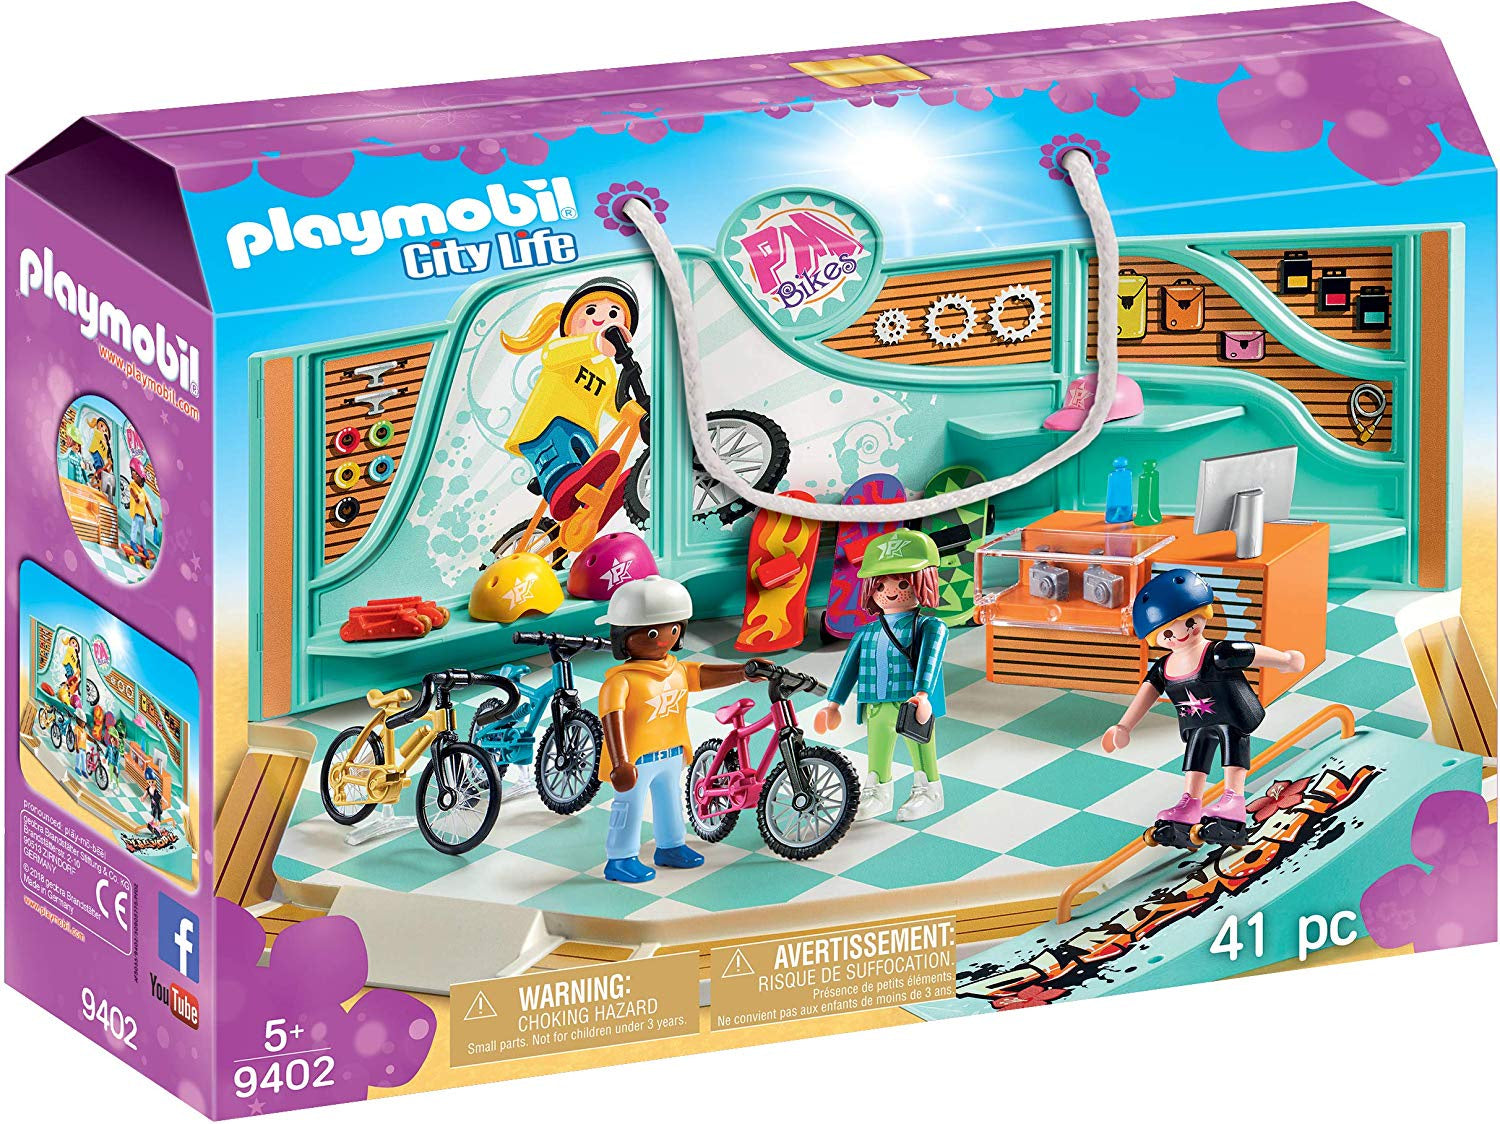 Playmobil City Life 9402 Bike & Skate Shop